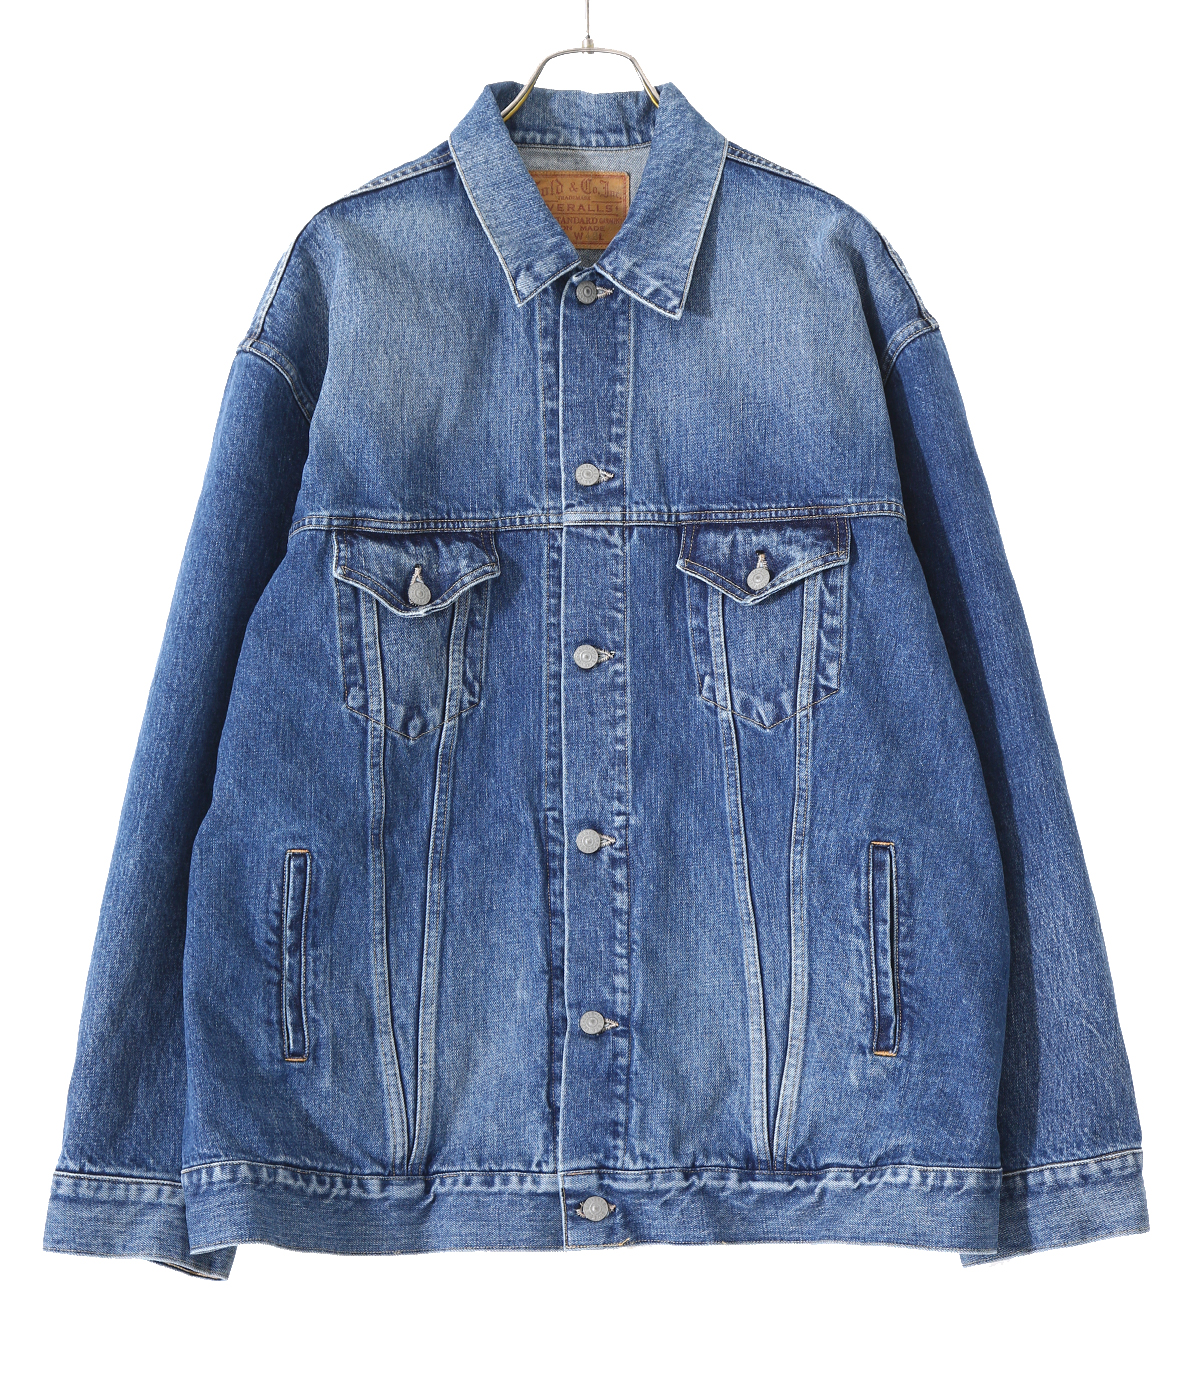 【予約】14oz. DENIM TRUCKER JACKET AGED MODEL